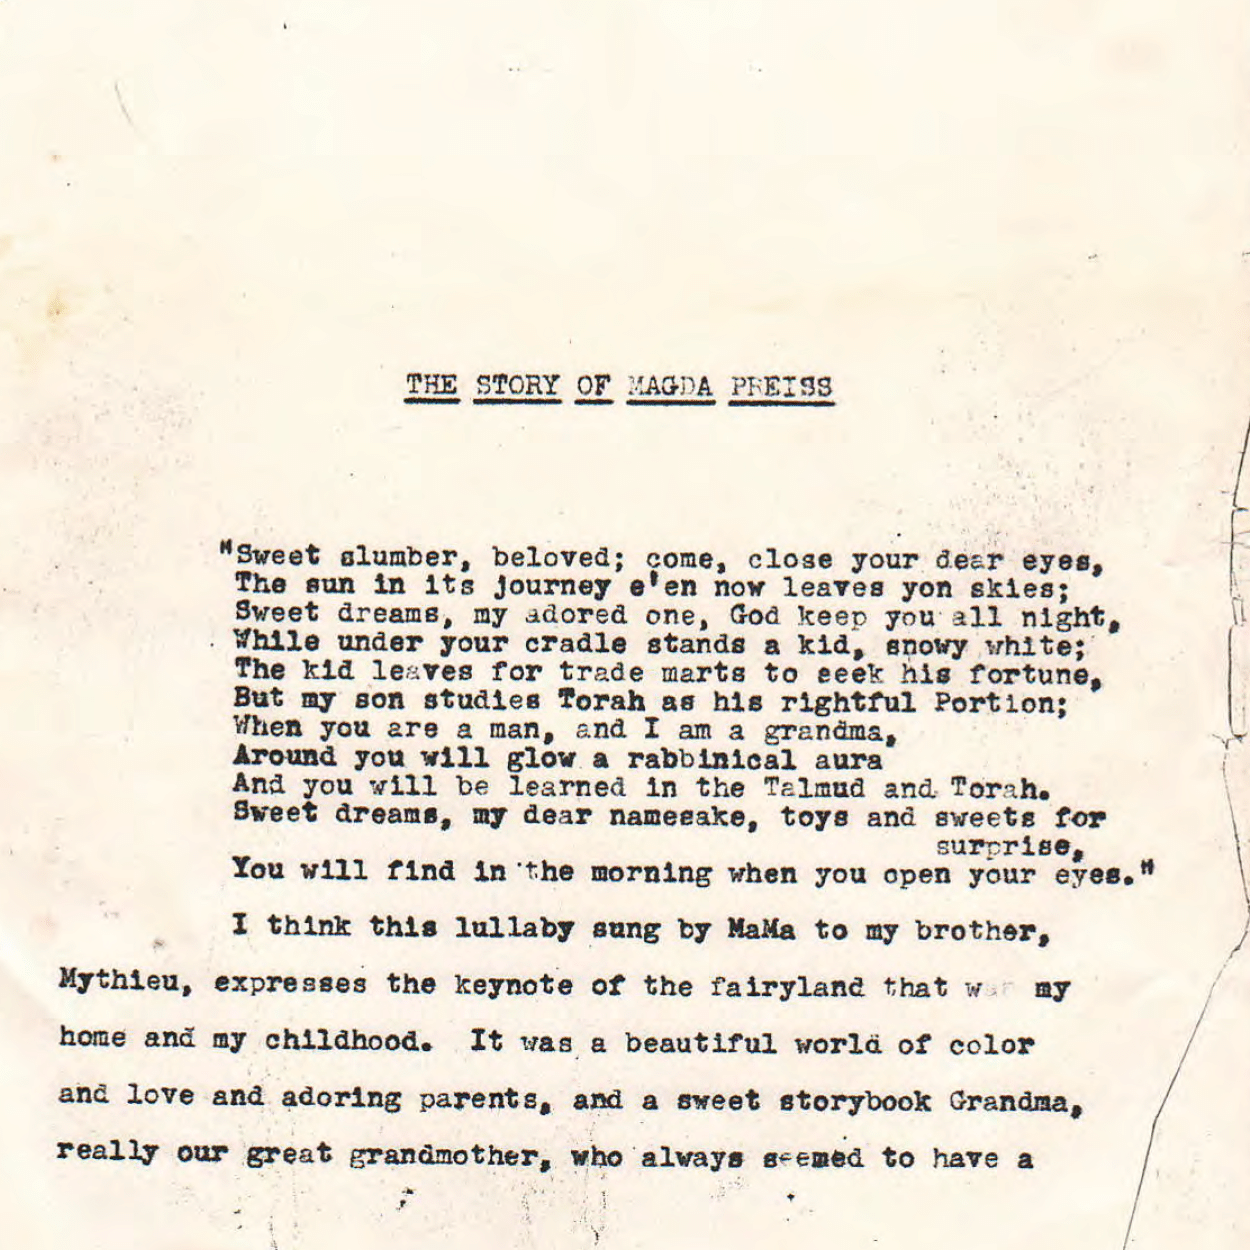 Original Manuscript for The Story of Magda Preiss